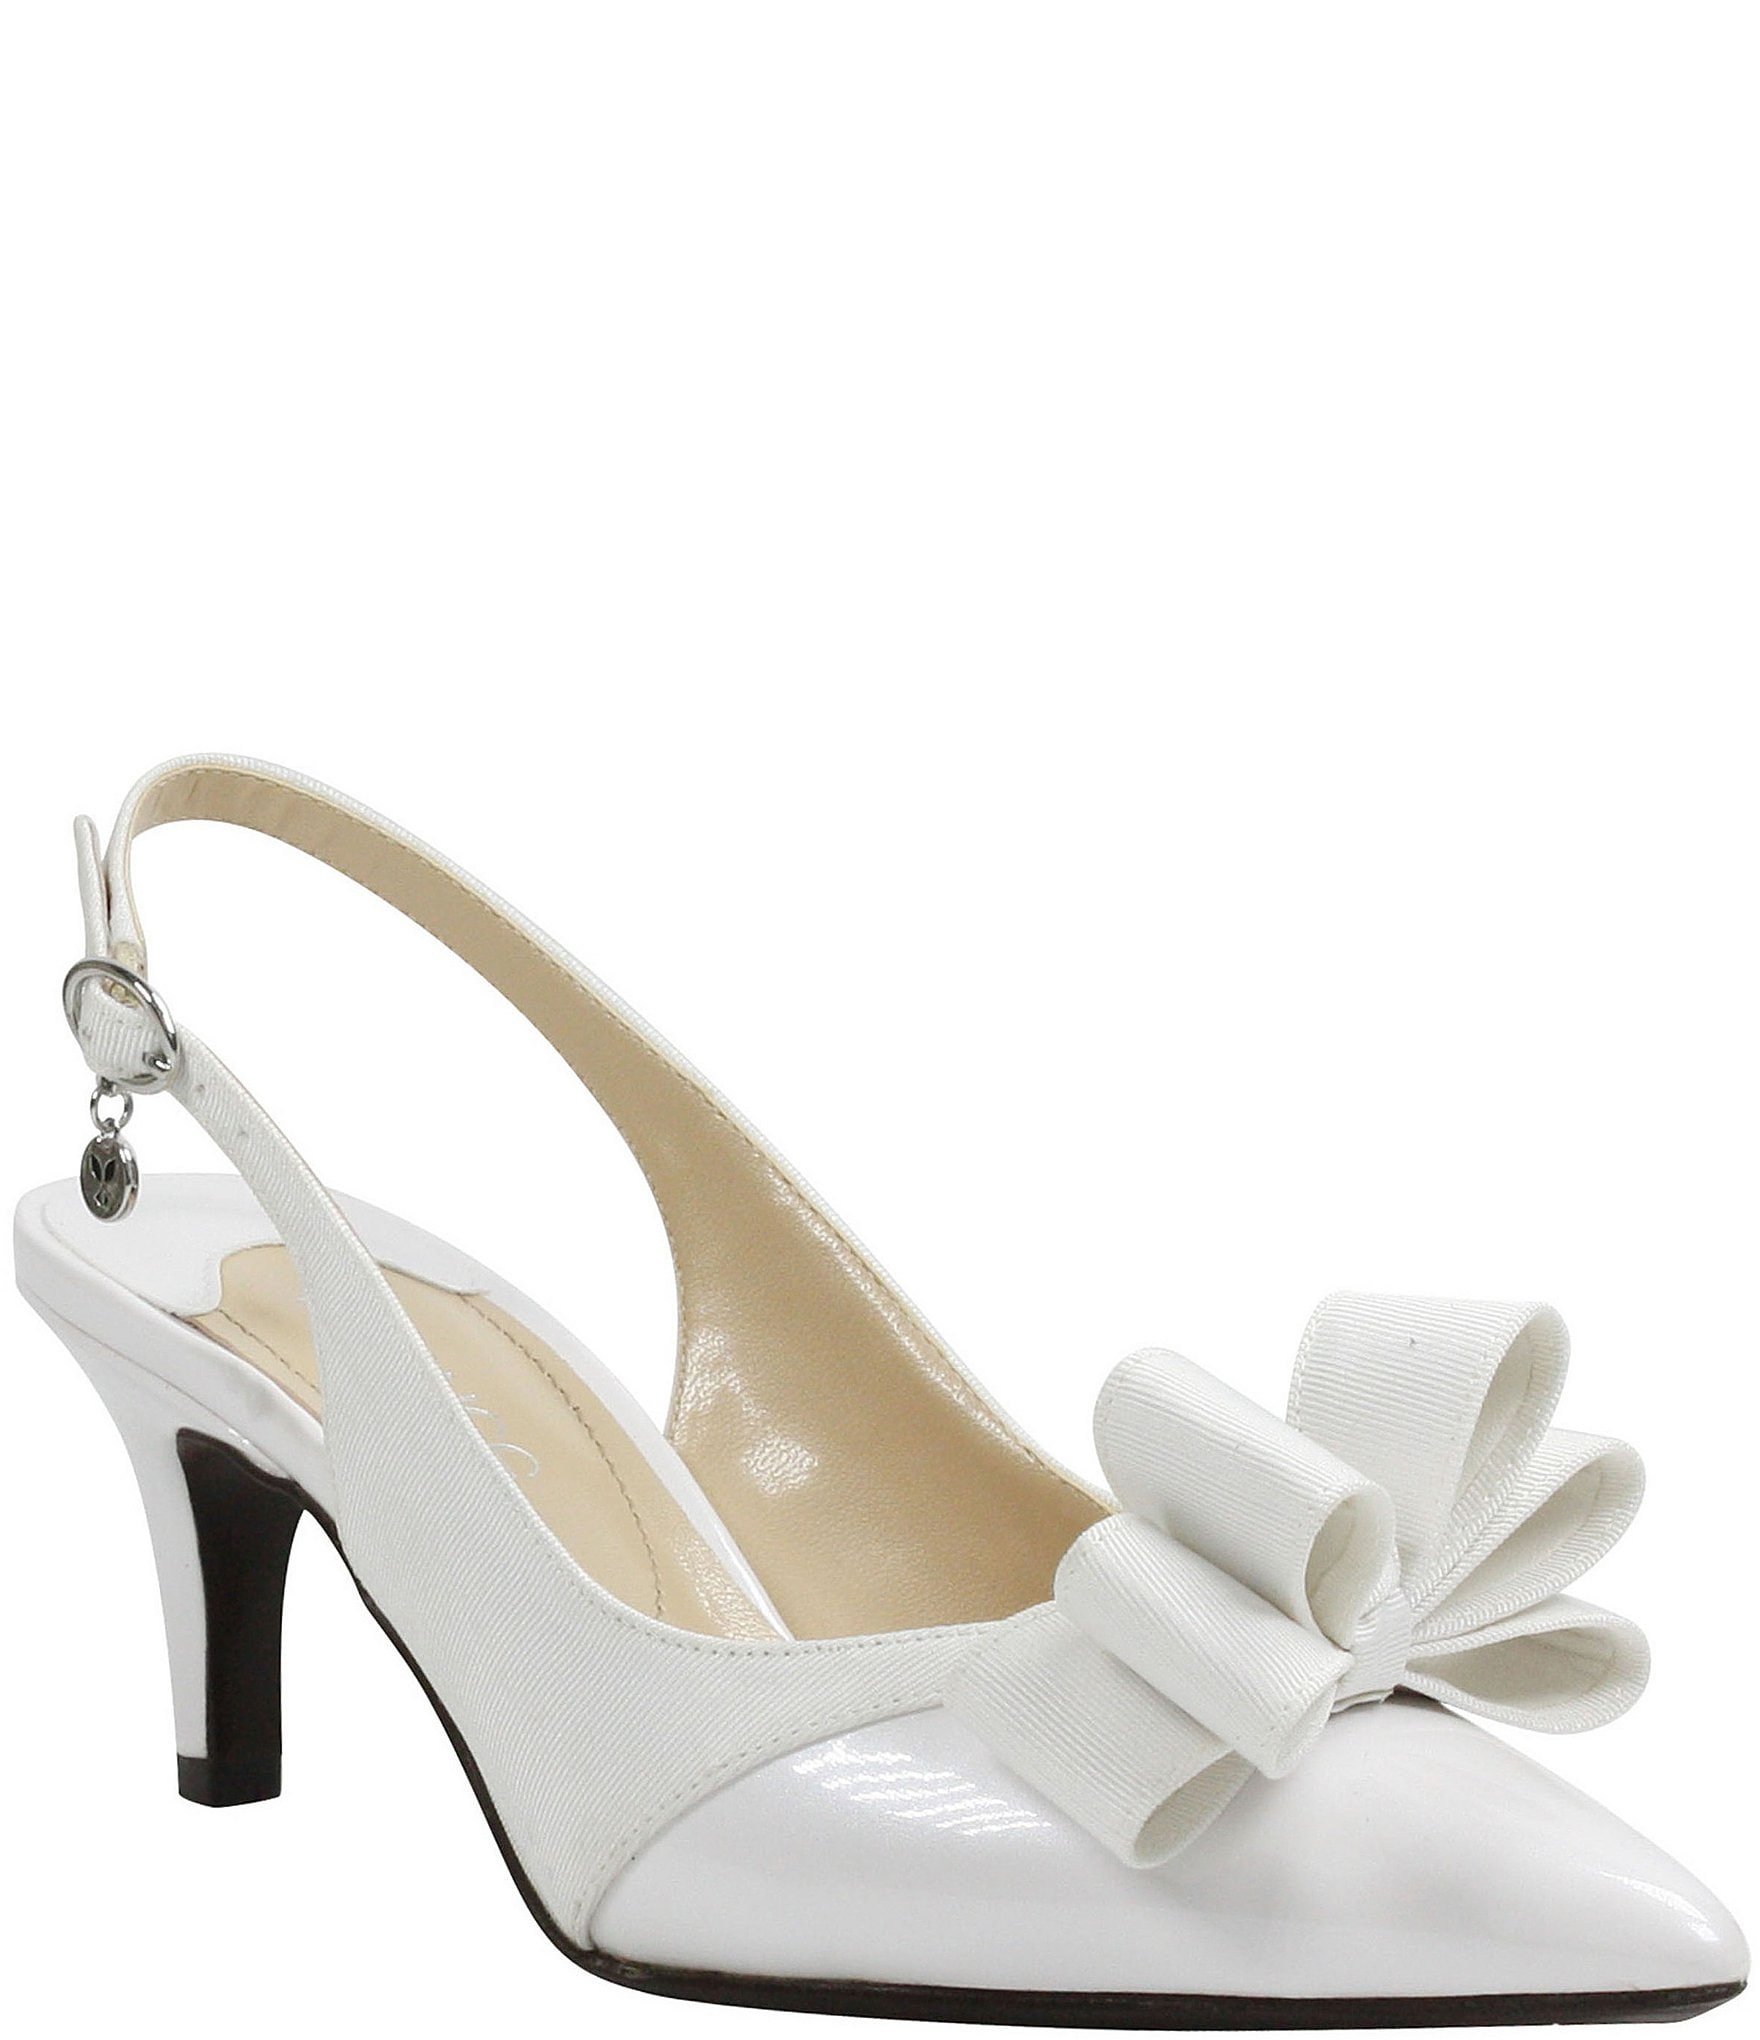 c15ab3b33f Kitten Heel Women's Bridal & Wedding Shoes | Dillard's